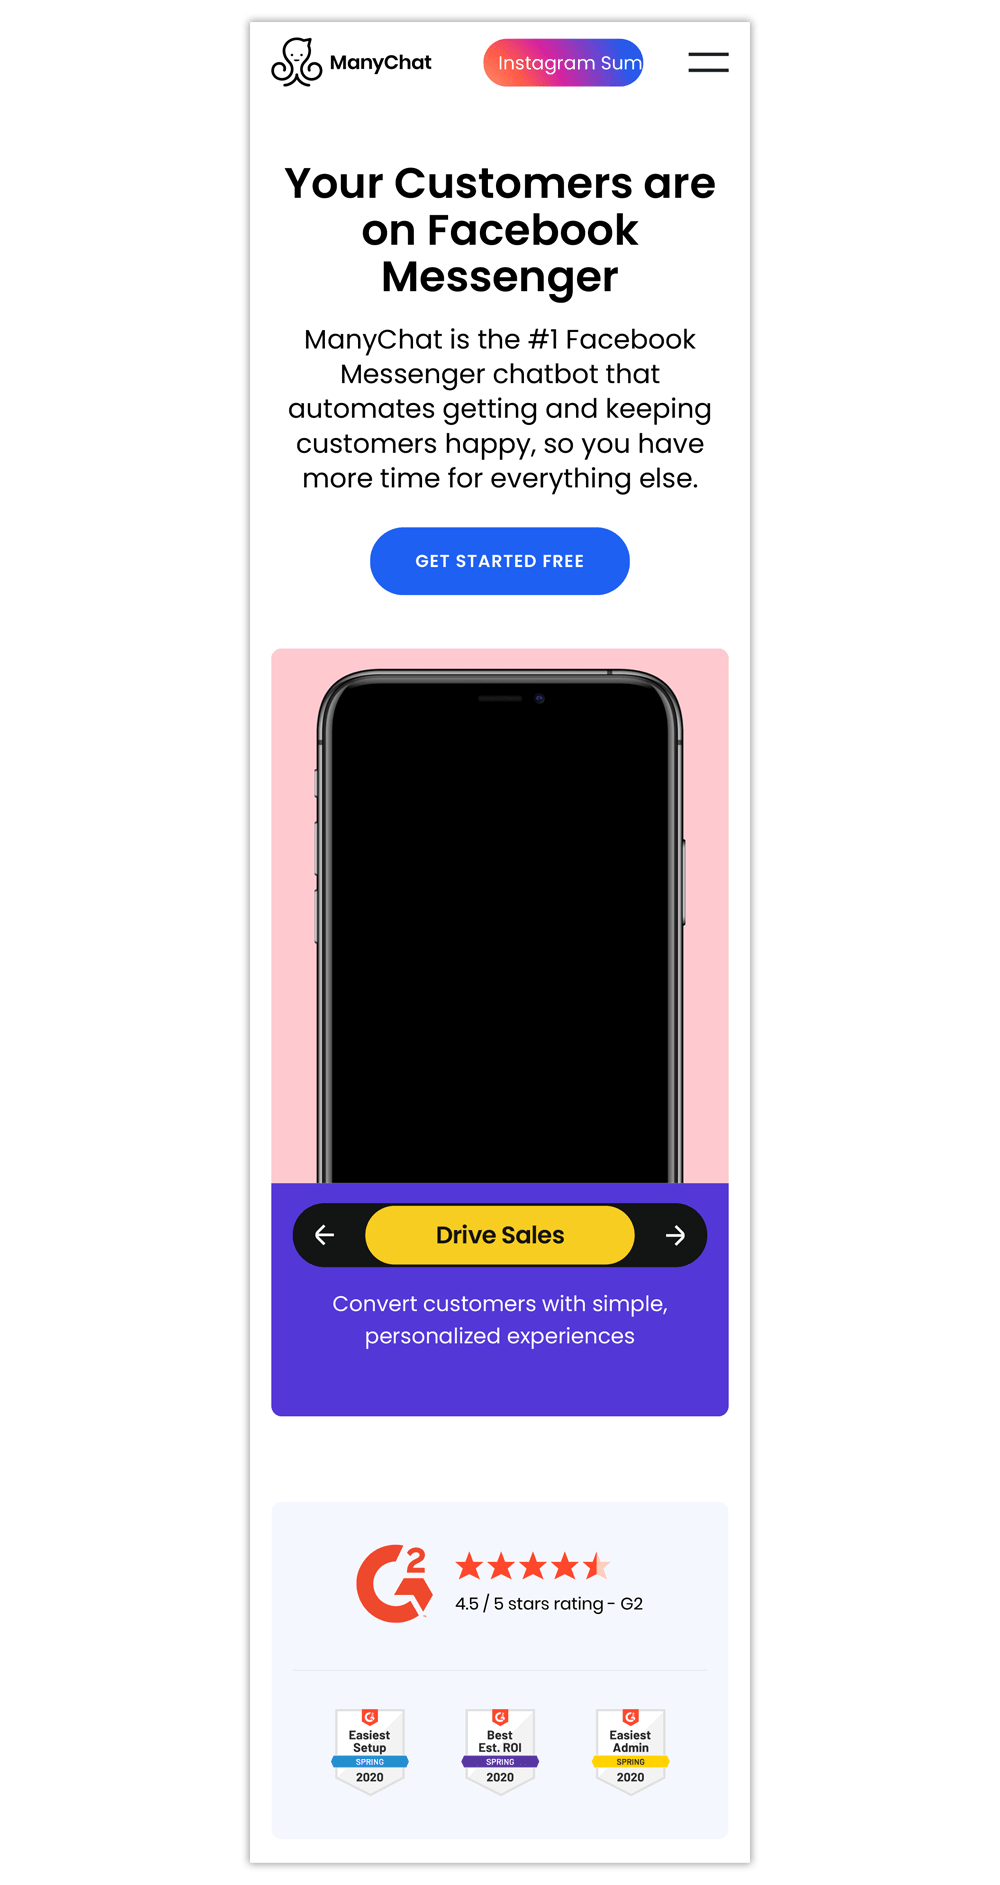 Mobile landing page examples: ManyChat